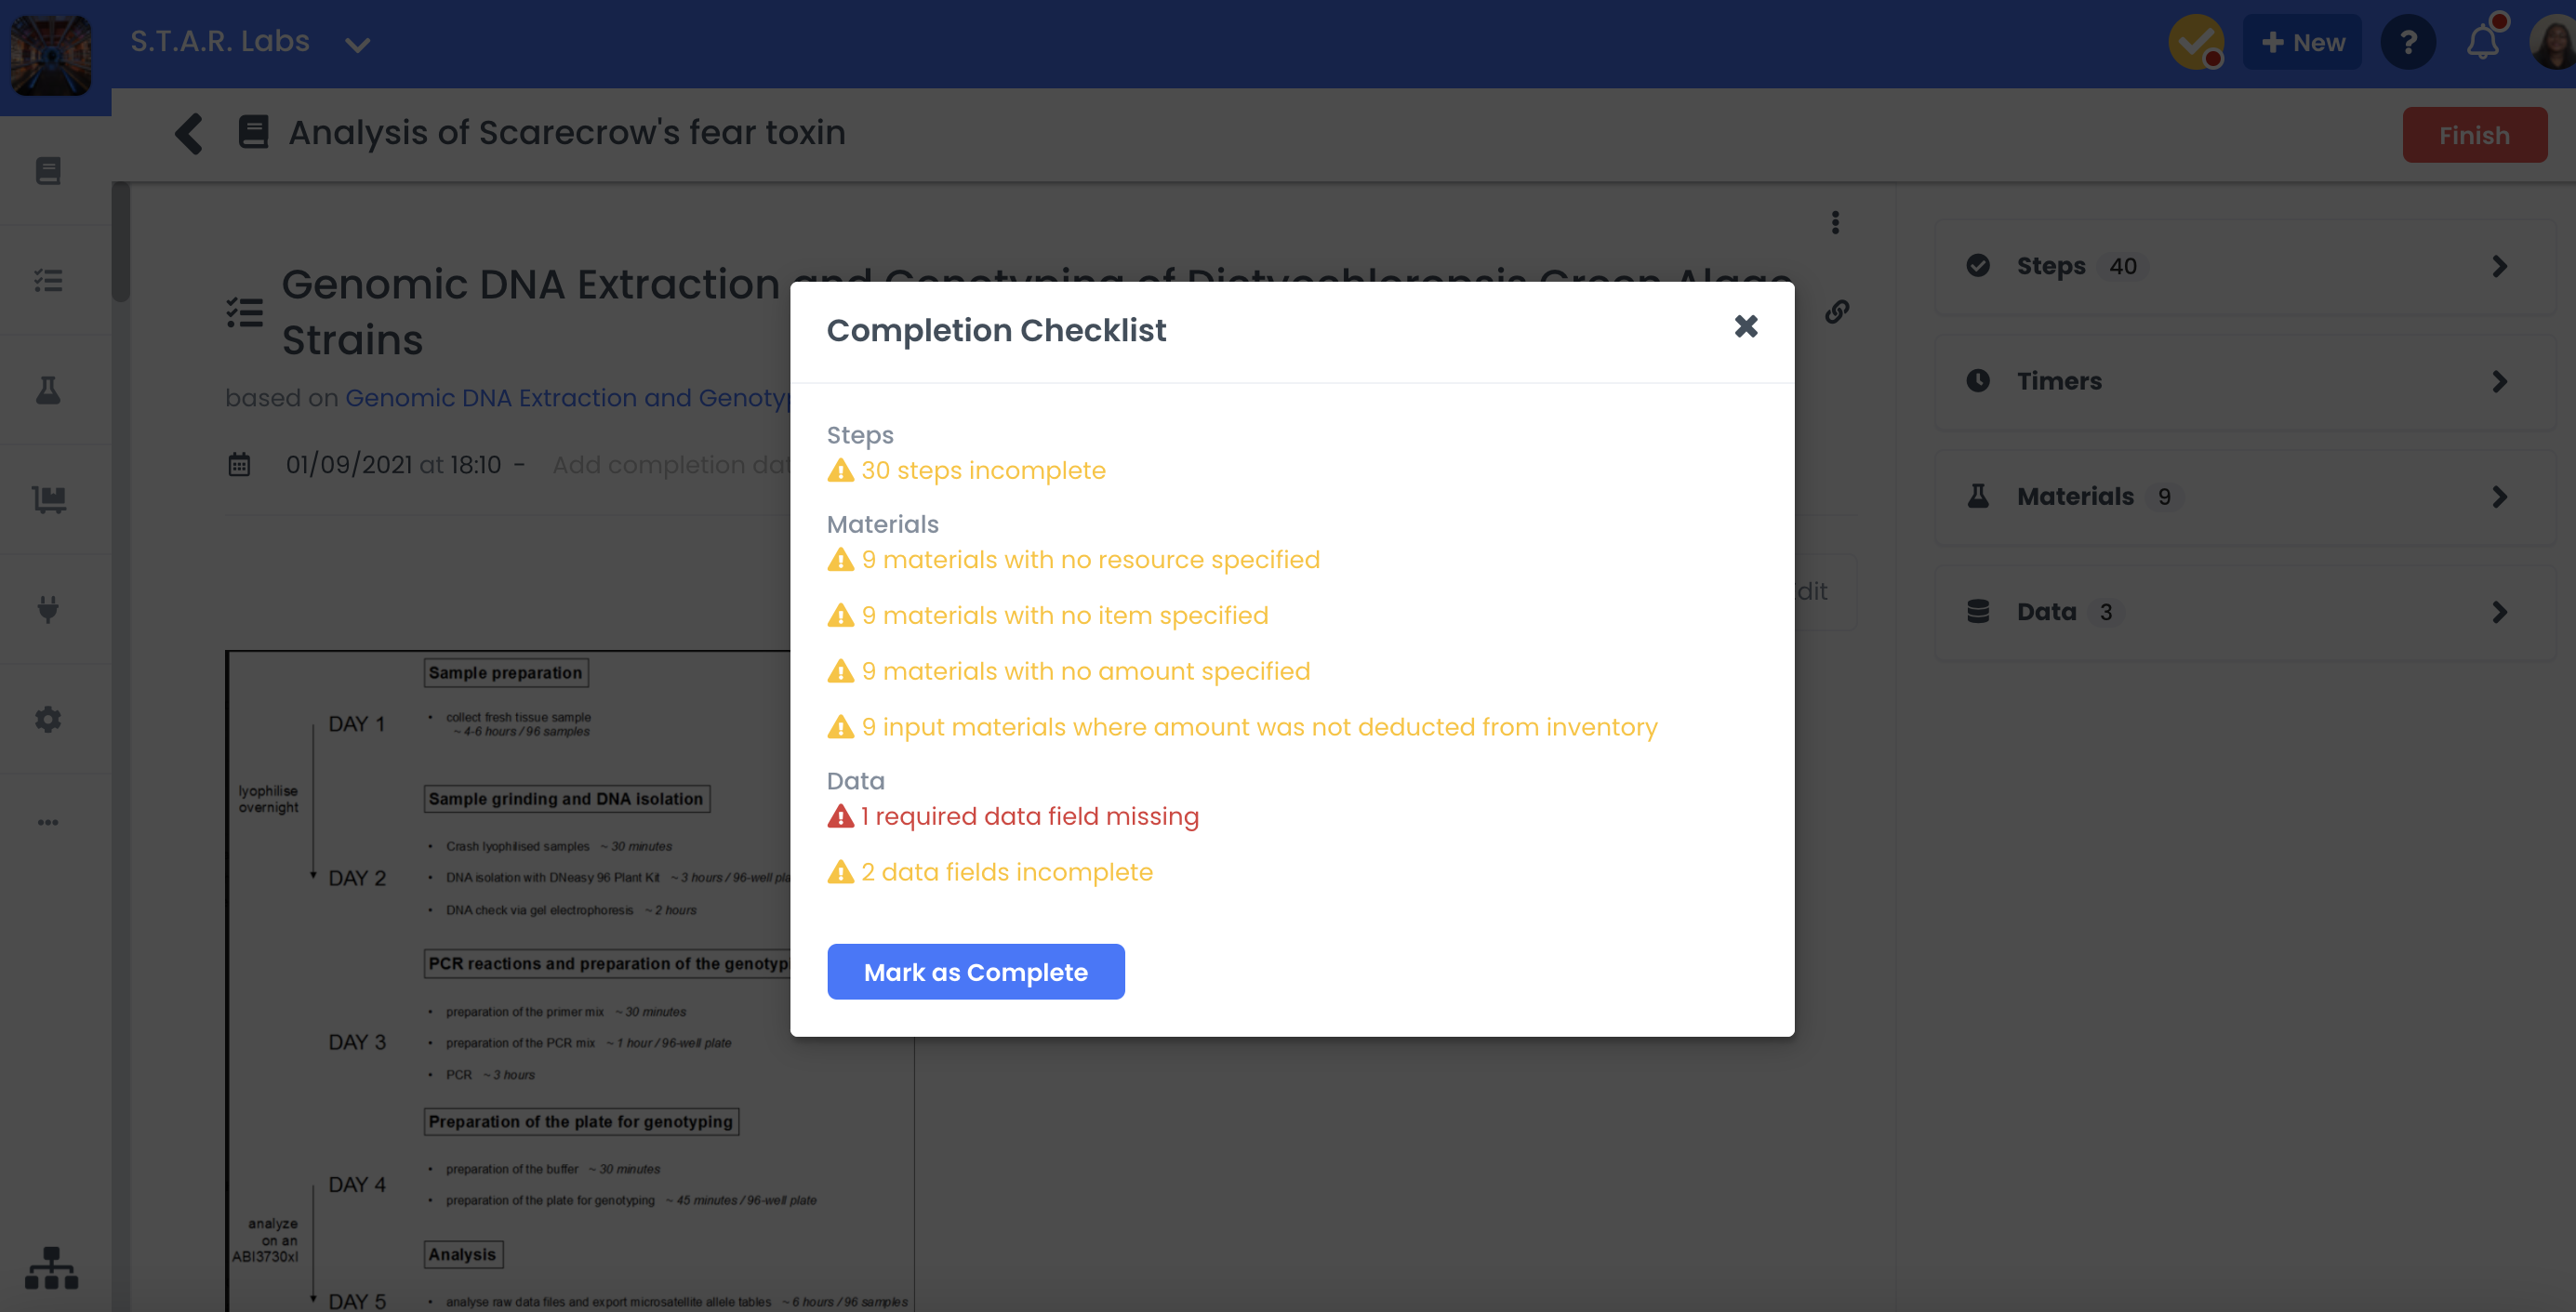 A screenshot of the complete checklist